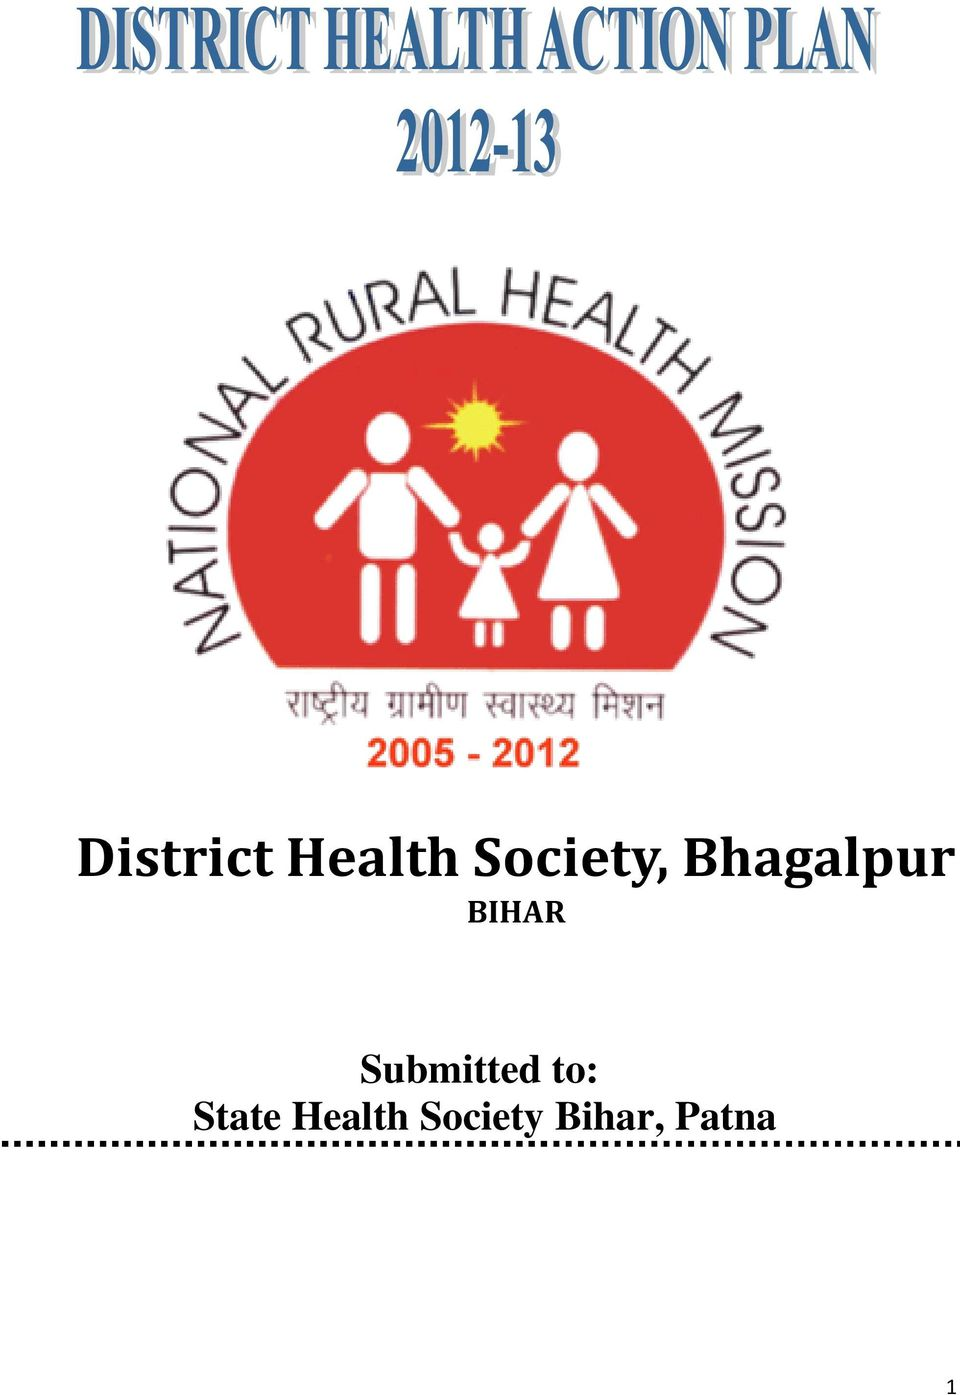 BIHAR Submitted to: